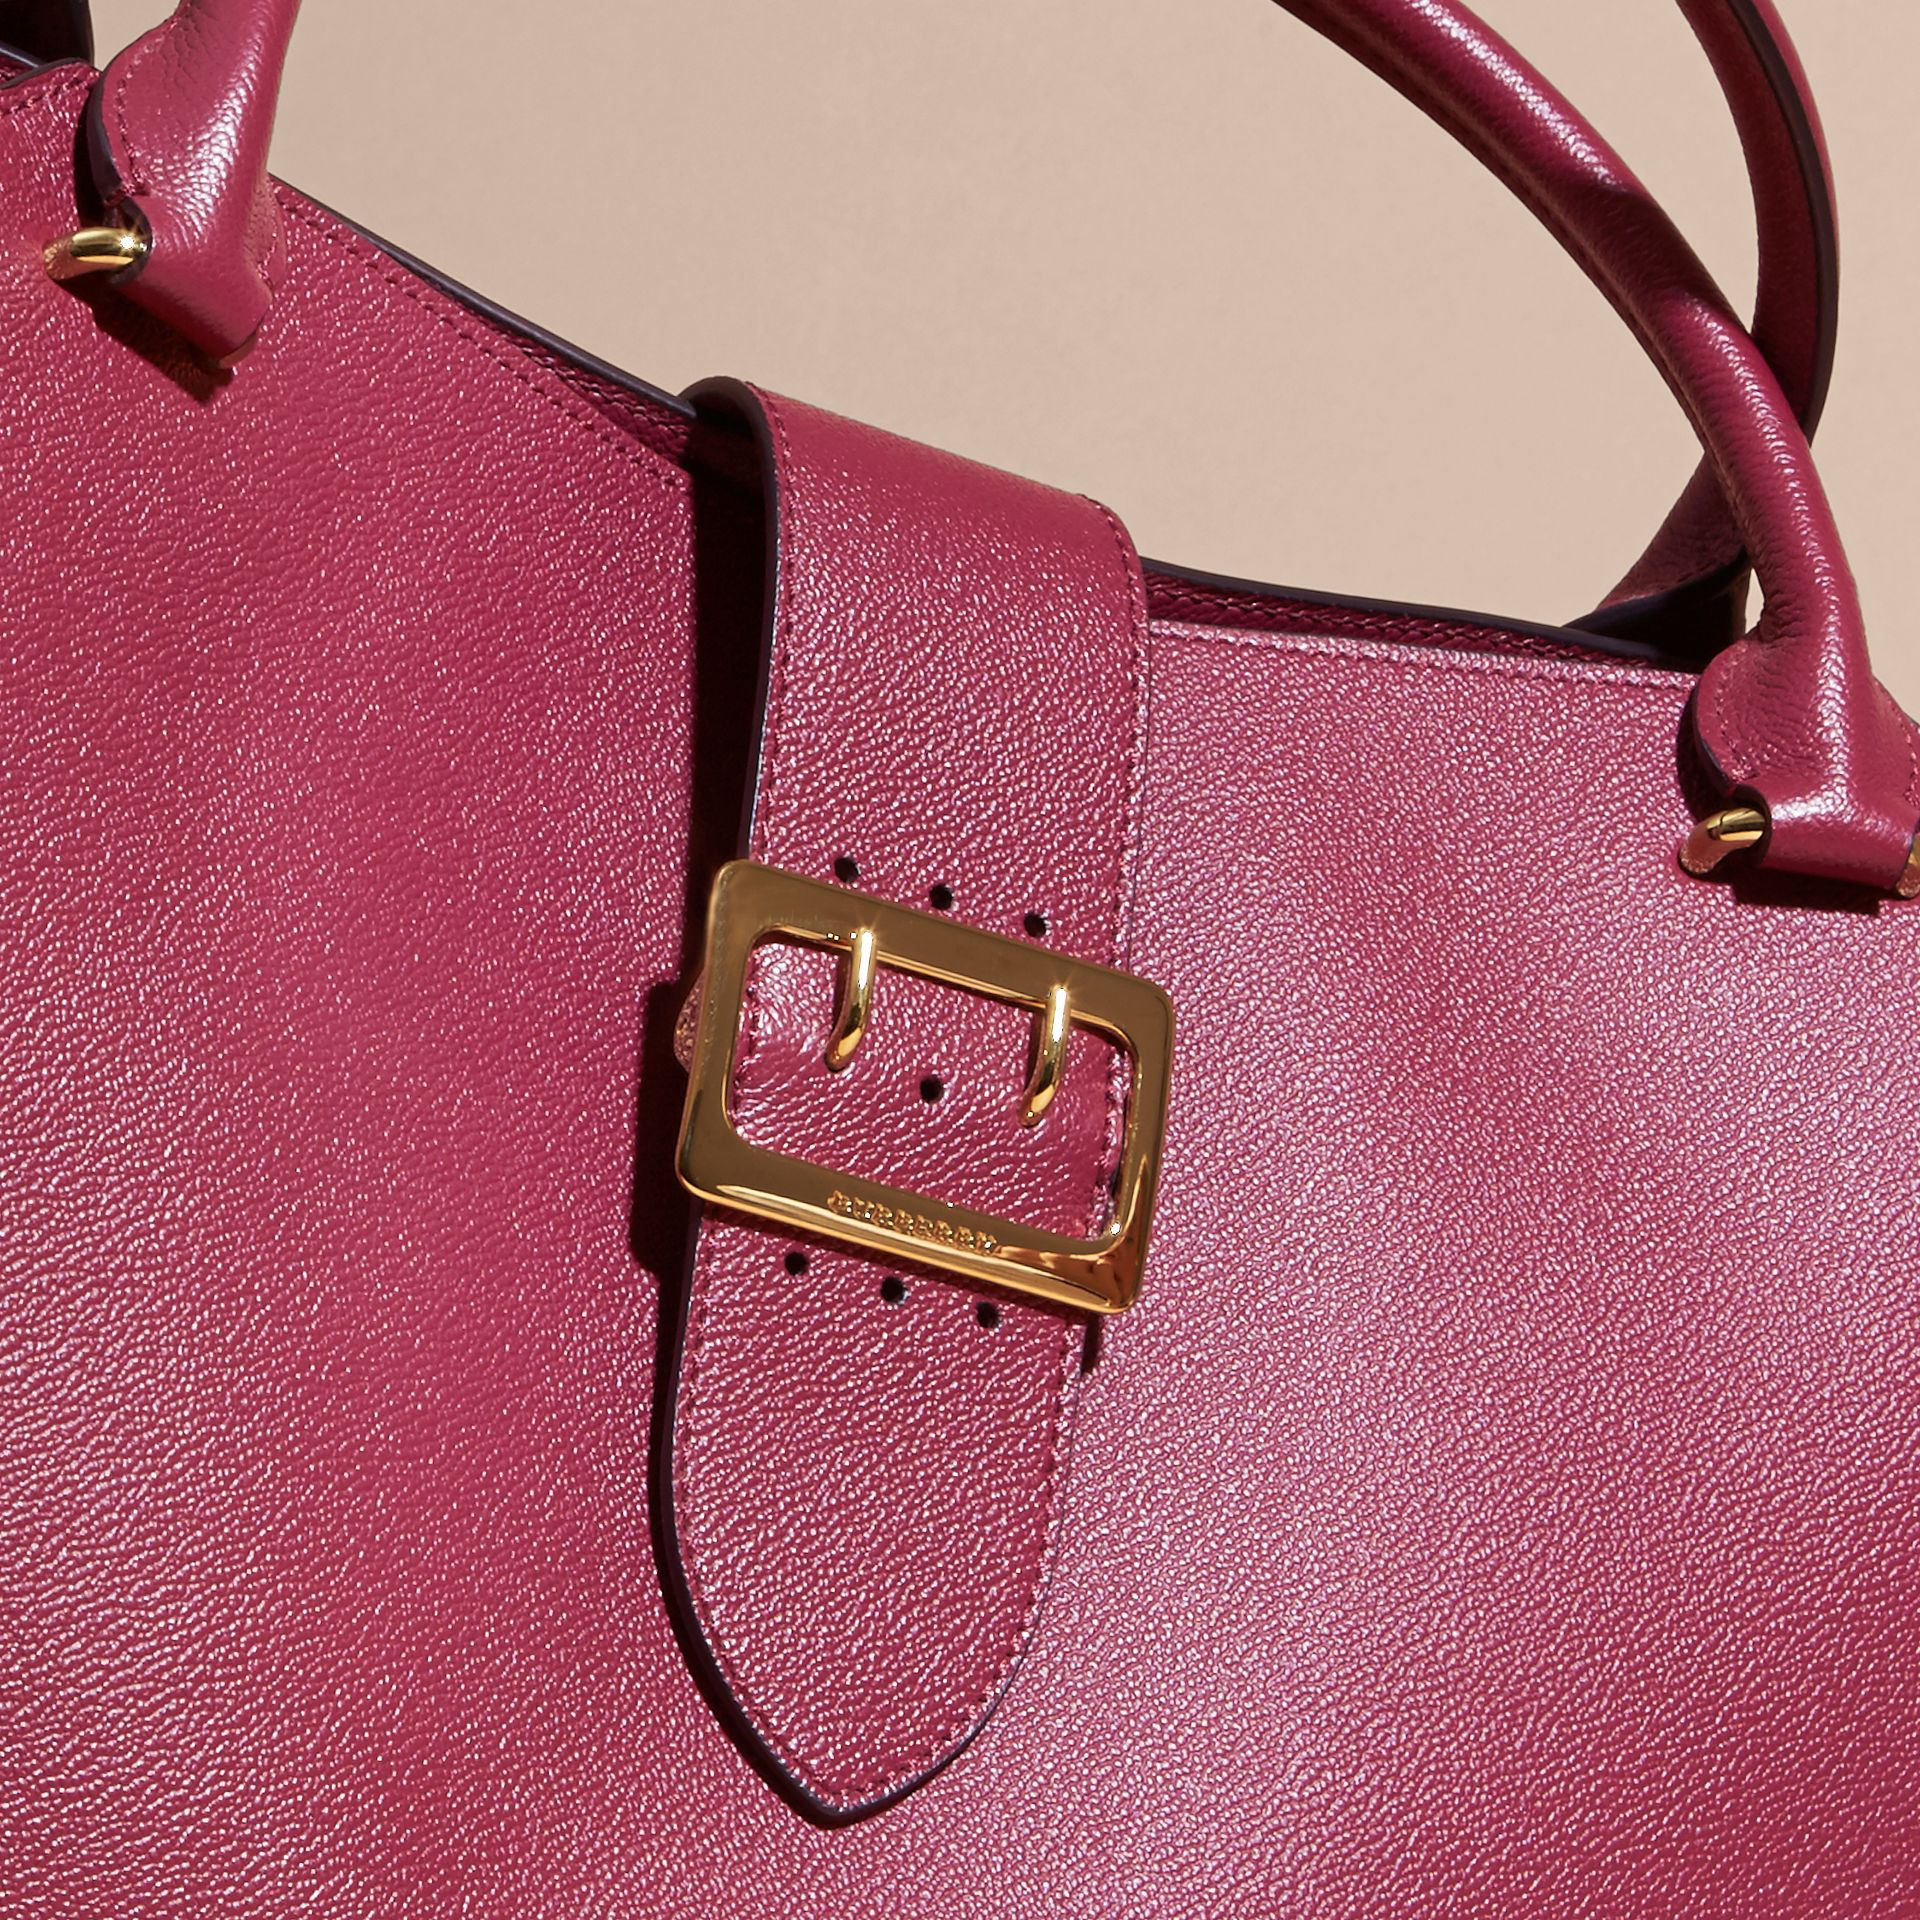 Dark plum The Large Buckle Tote in Grainy Leather Dark Plum - gallery image 2